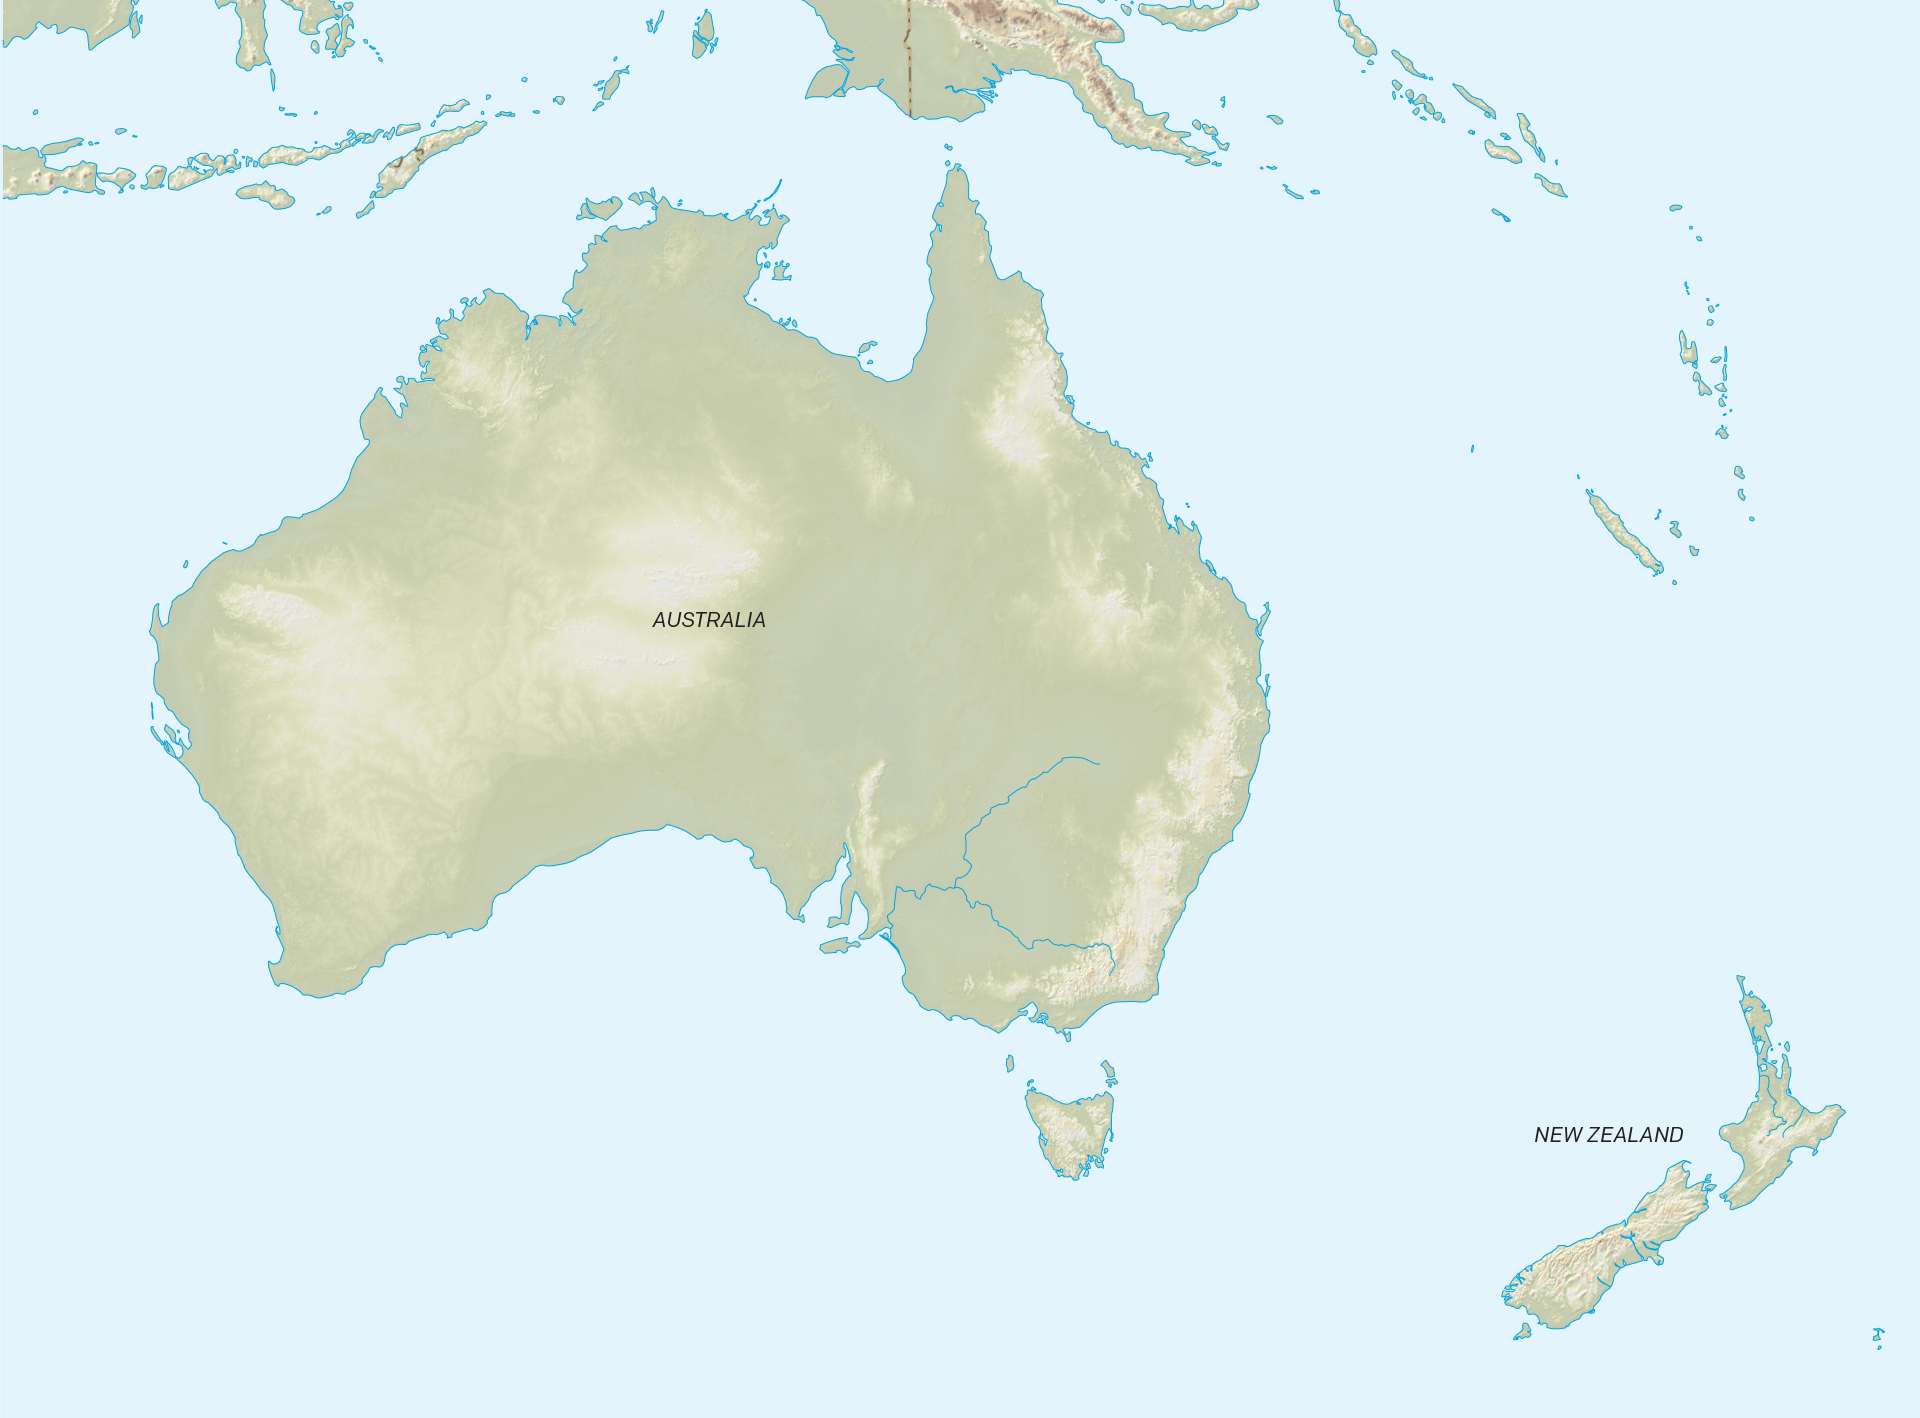 Map of Australia & New Zealand